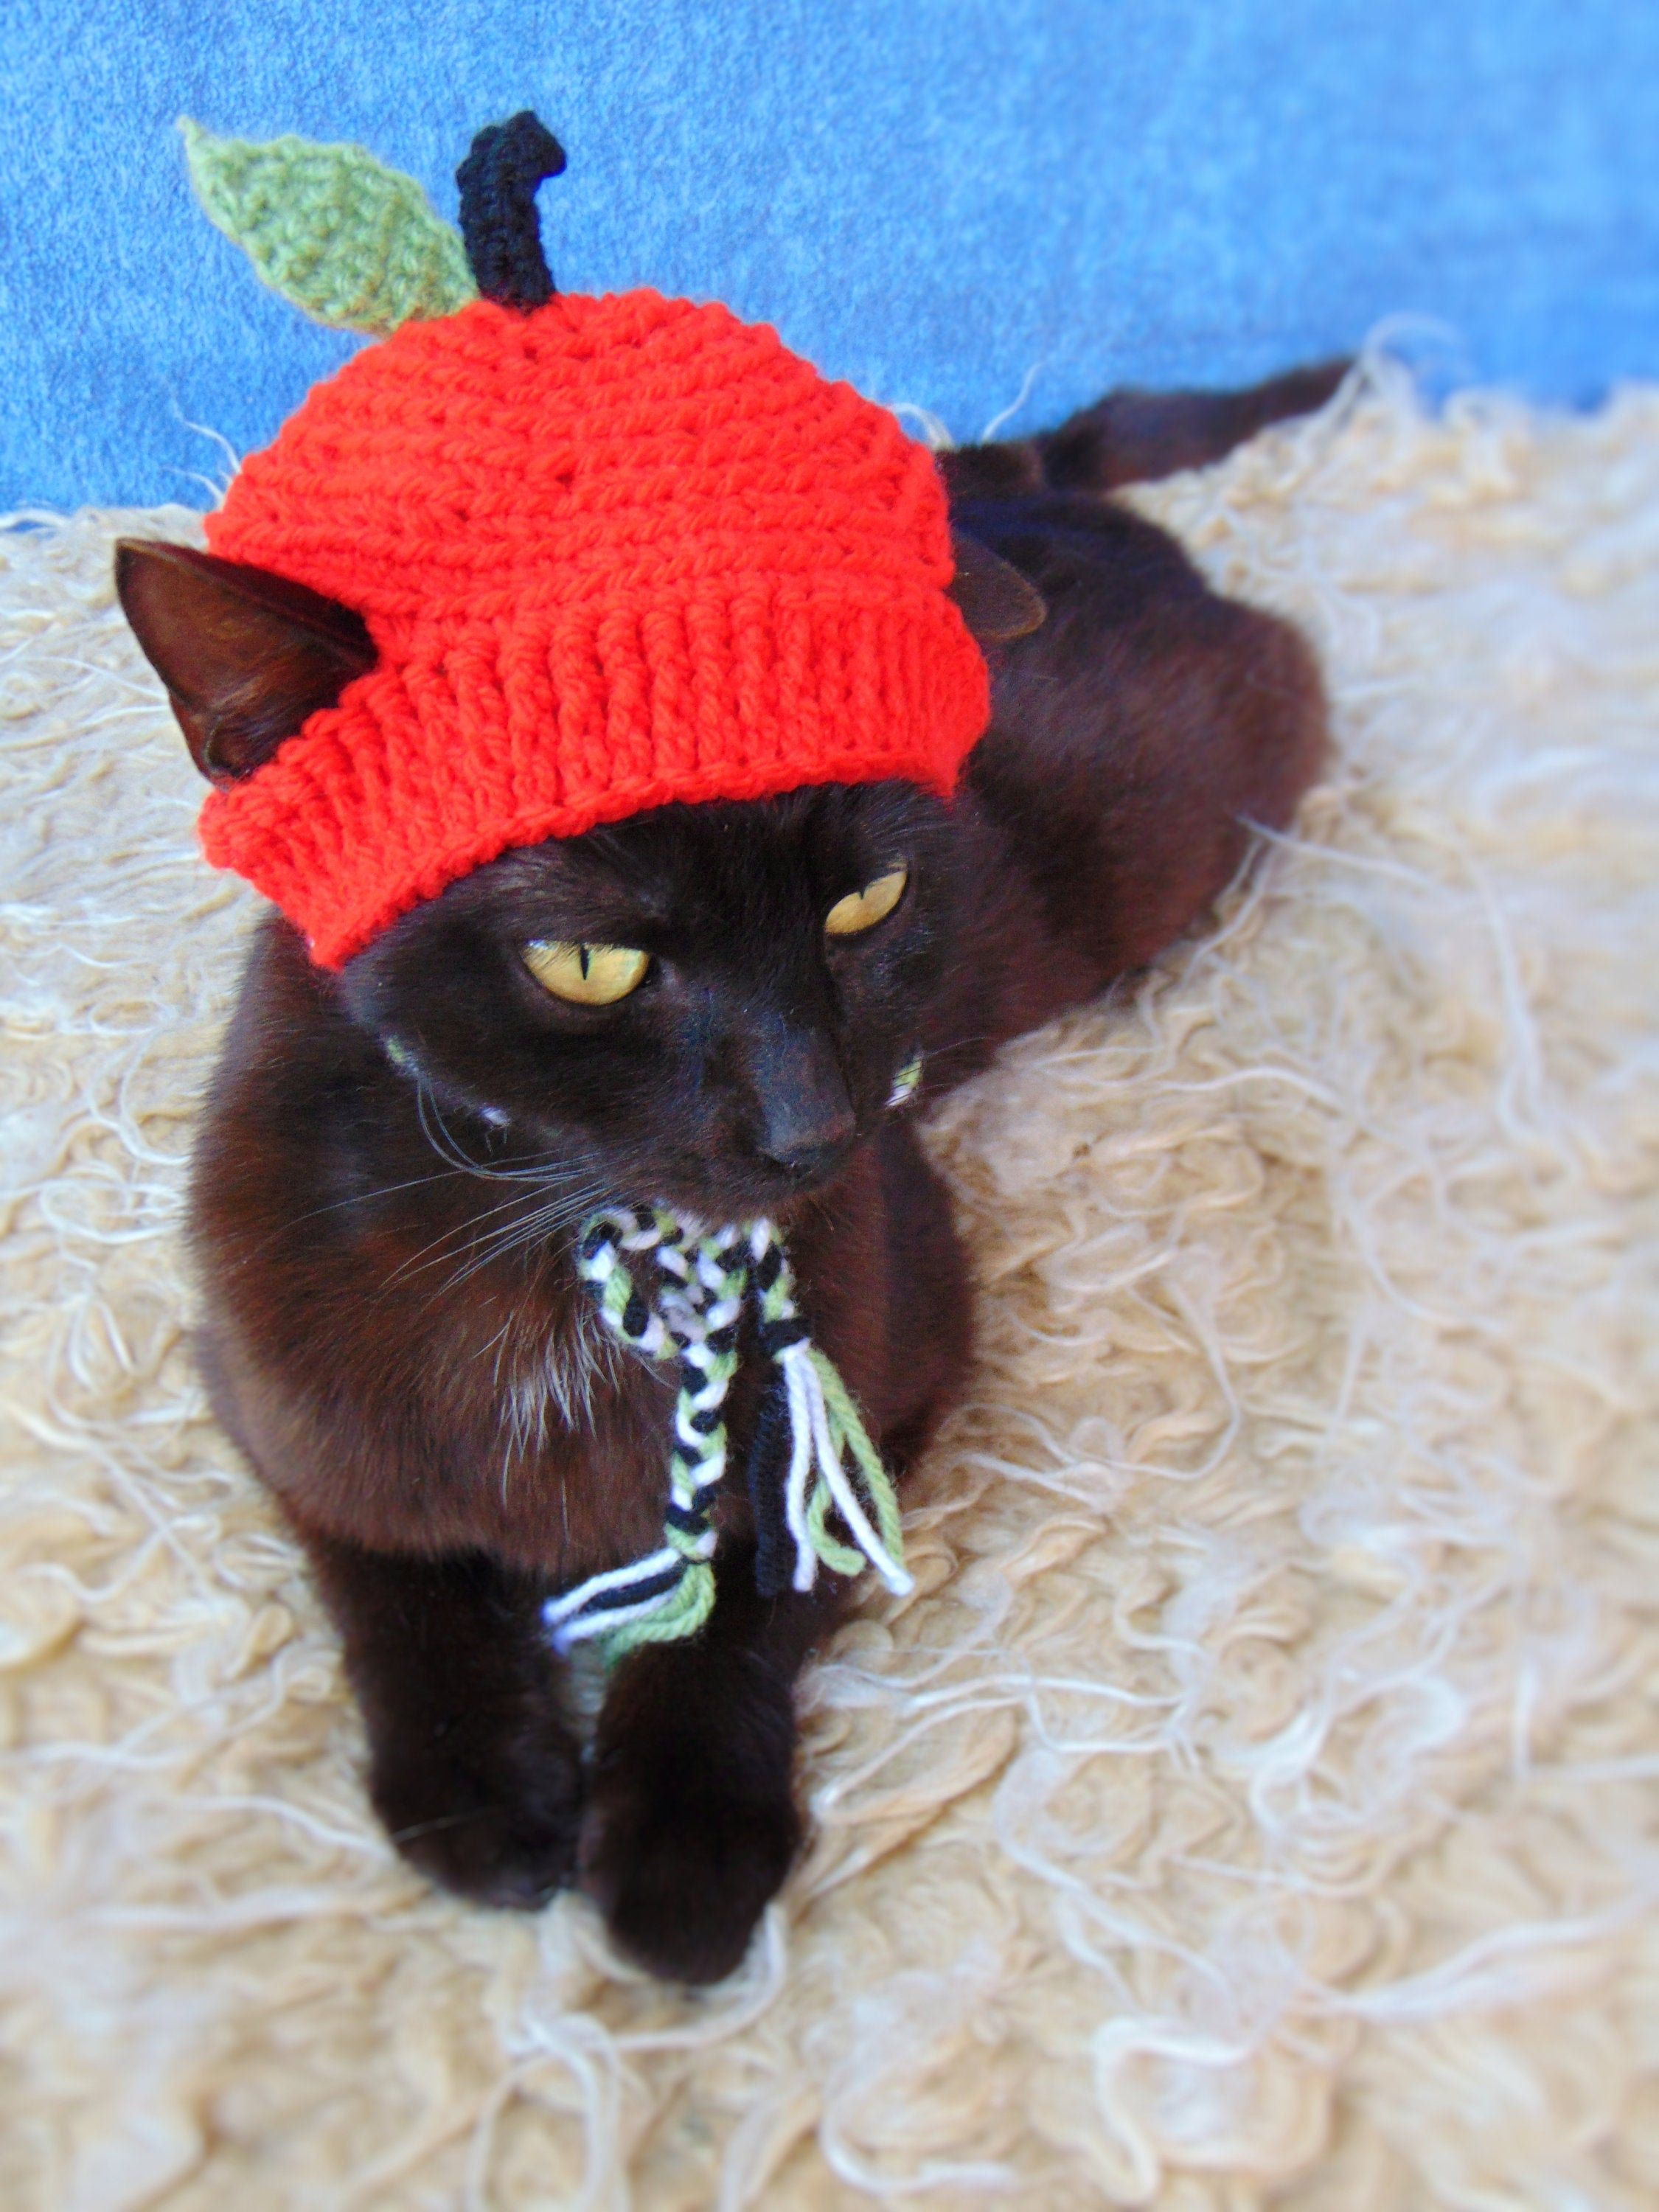 Apple Hat For Cat Halloween Apple Pet Costume Kitten Outfit Cat Accessories Gift For Cat Lover Cat Outfits Pets Cat Accessories Pet Costumes